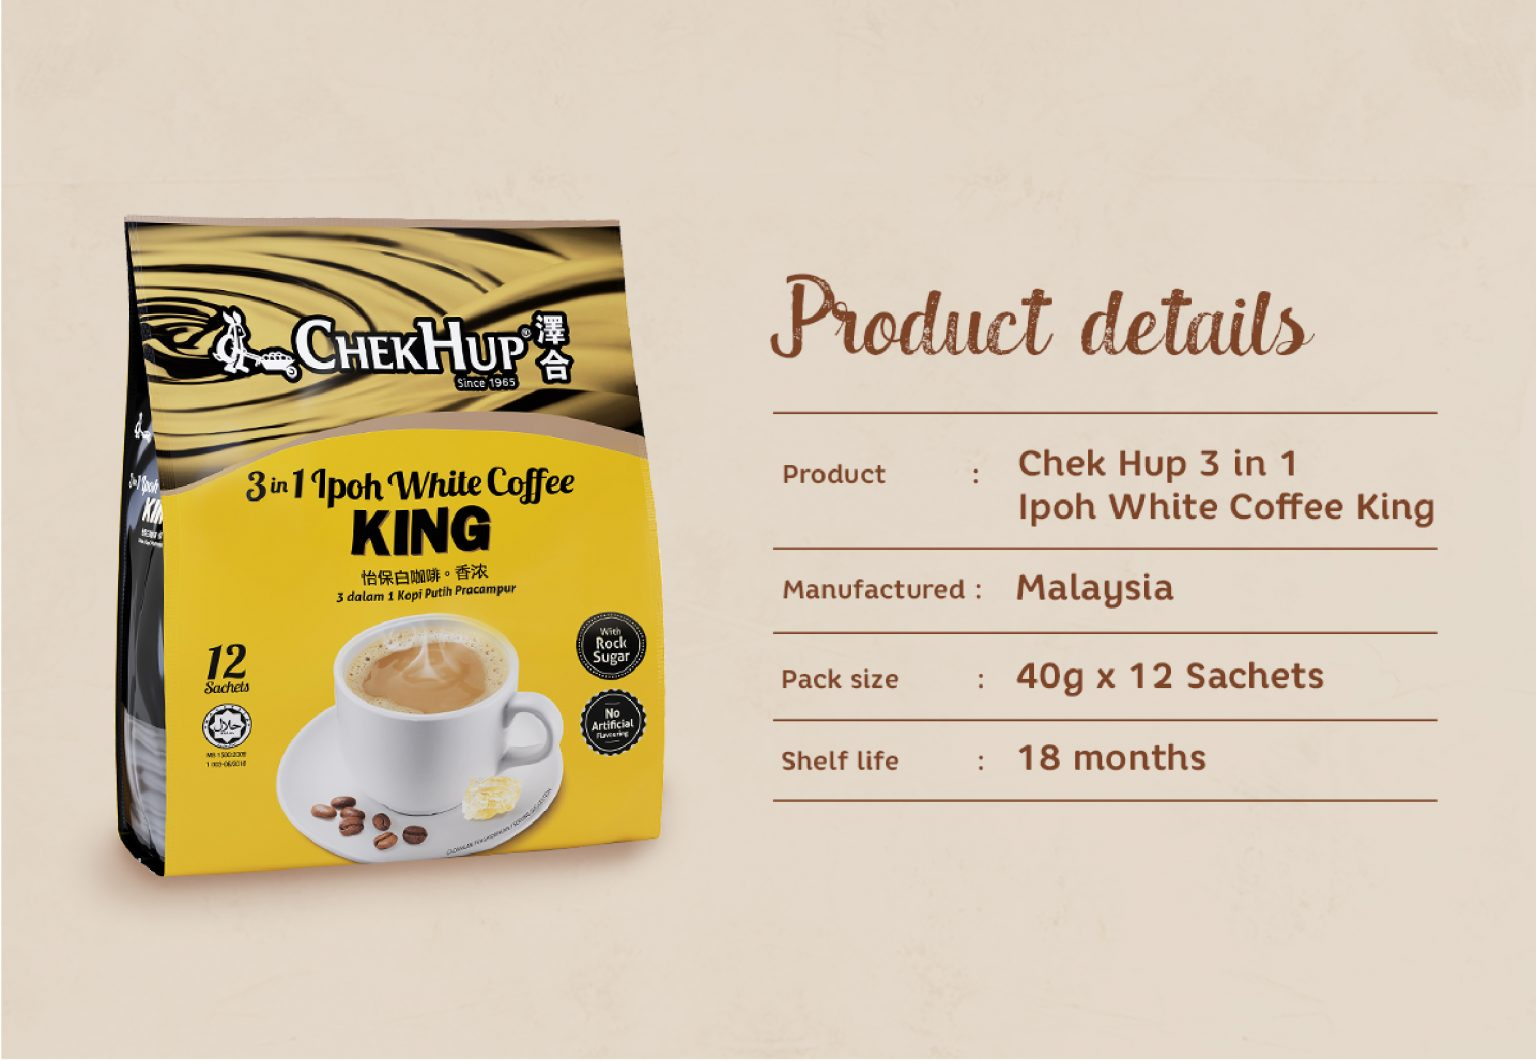 Chek Hup 3 in 1 Ipoh White Coffee (Rich) (40g x 12 sachets)